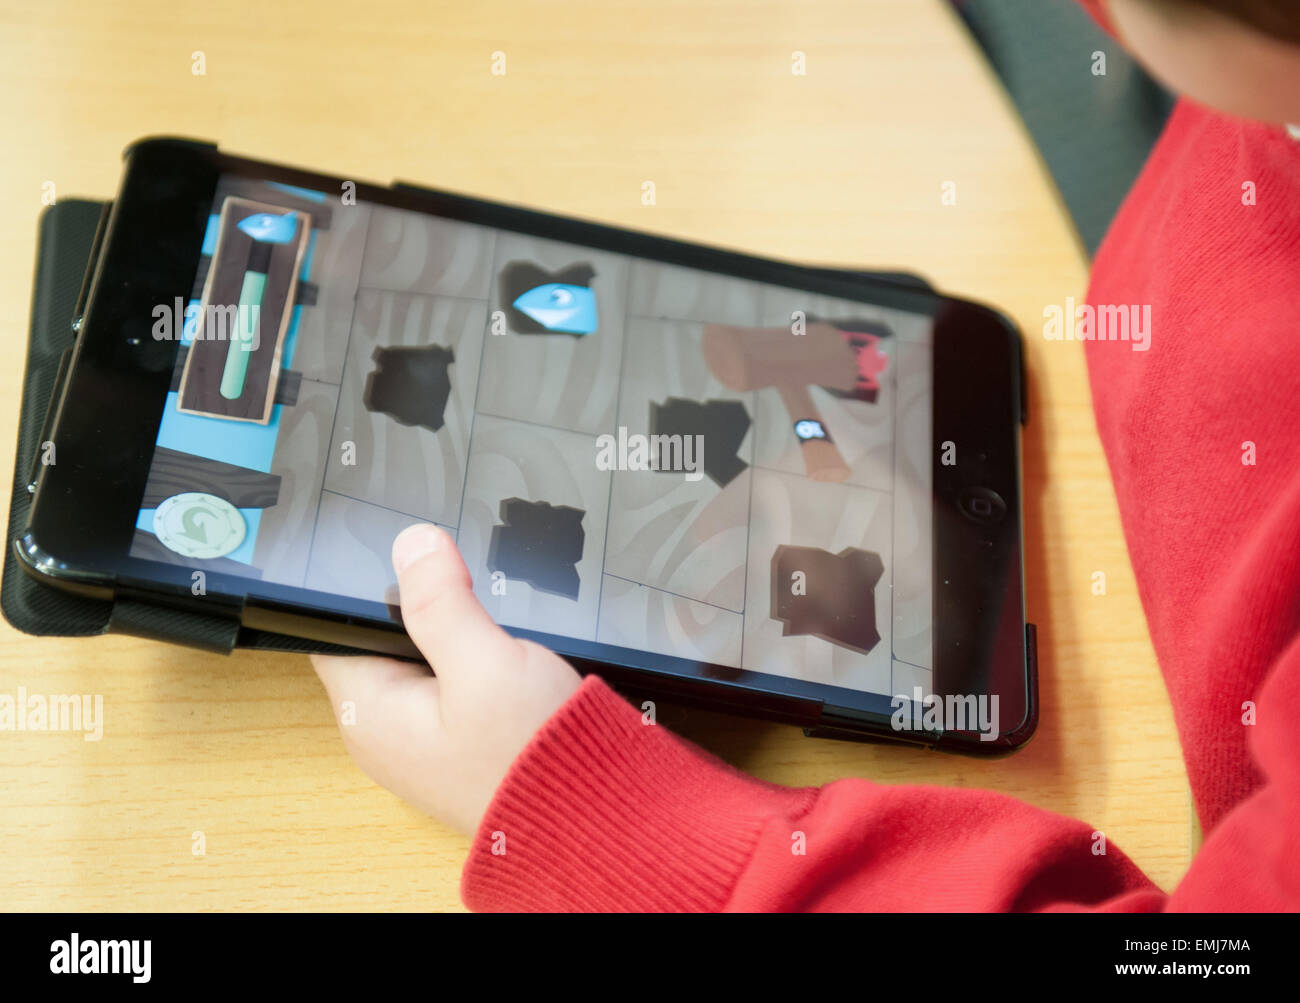 A UK primary school pupil using an ipad in a lesson in class - Stock Image